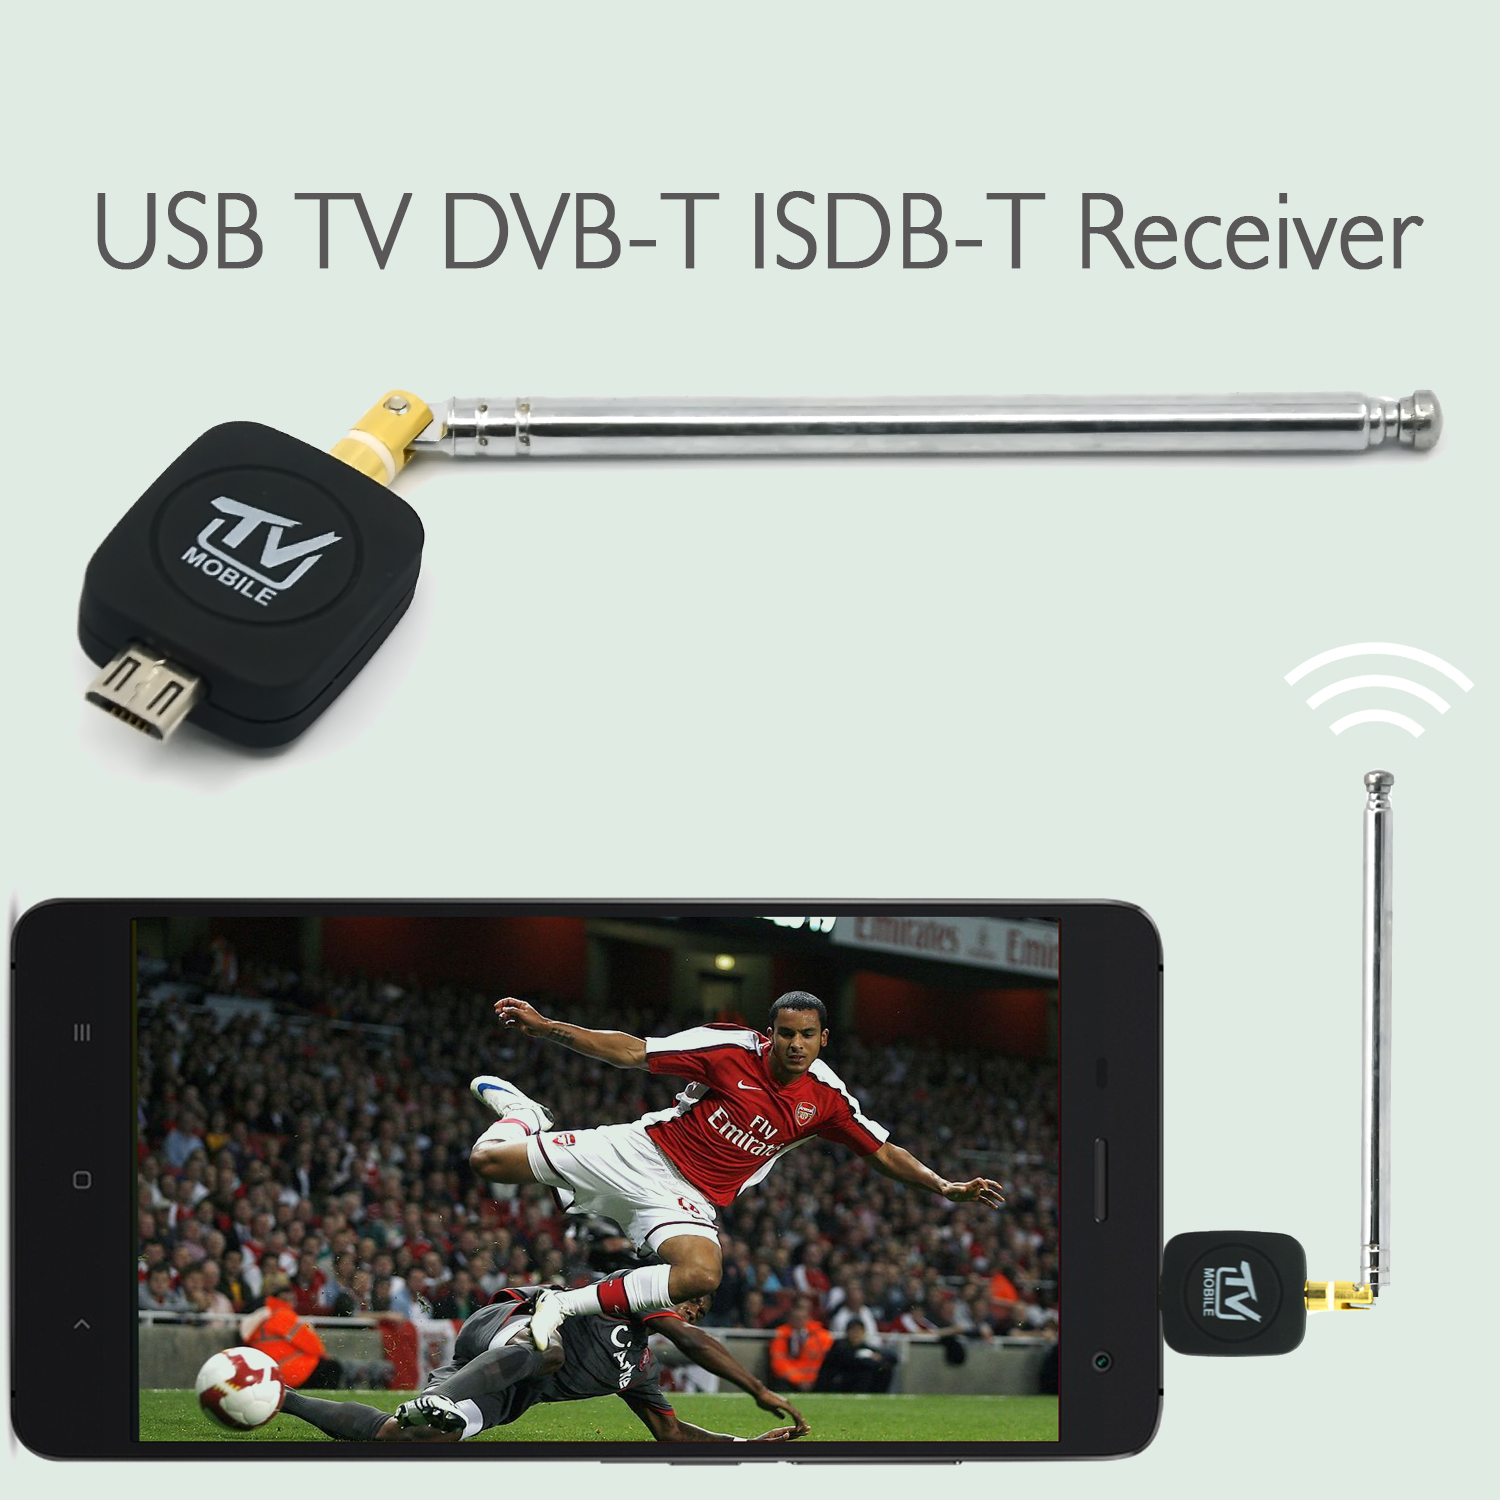 Cellphone DVB-T/ISDB-T Micro USB TV Tuner Pocket Receiver Antenna Adapter for Android Mobile Phone TV Antenna Smart Phone Tablet(China (Mainland))